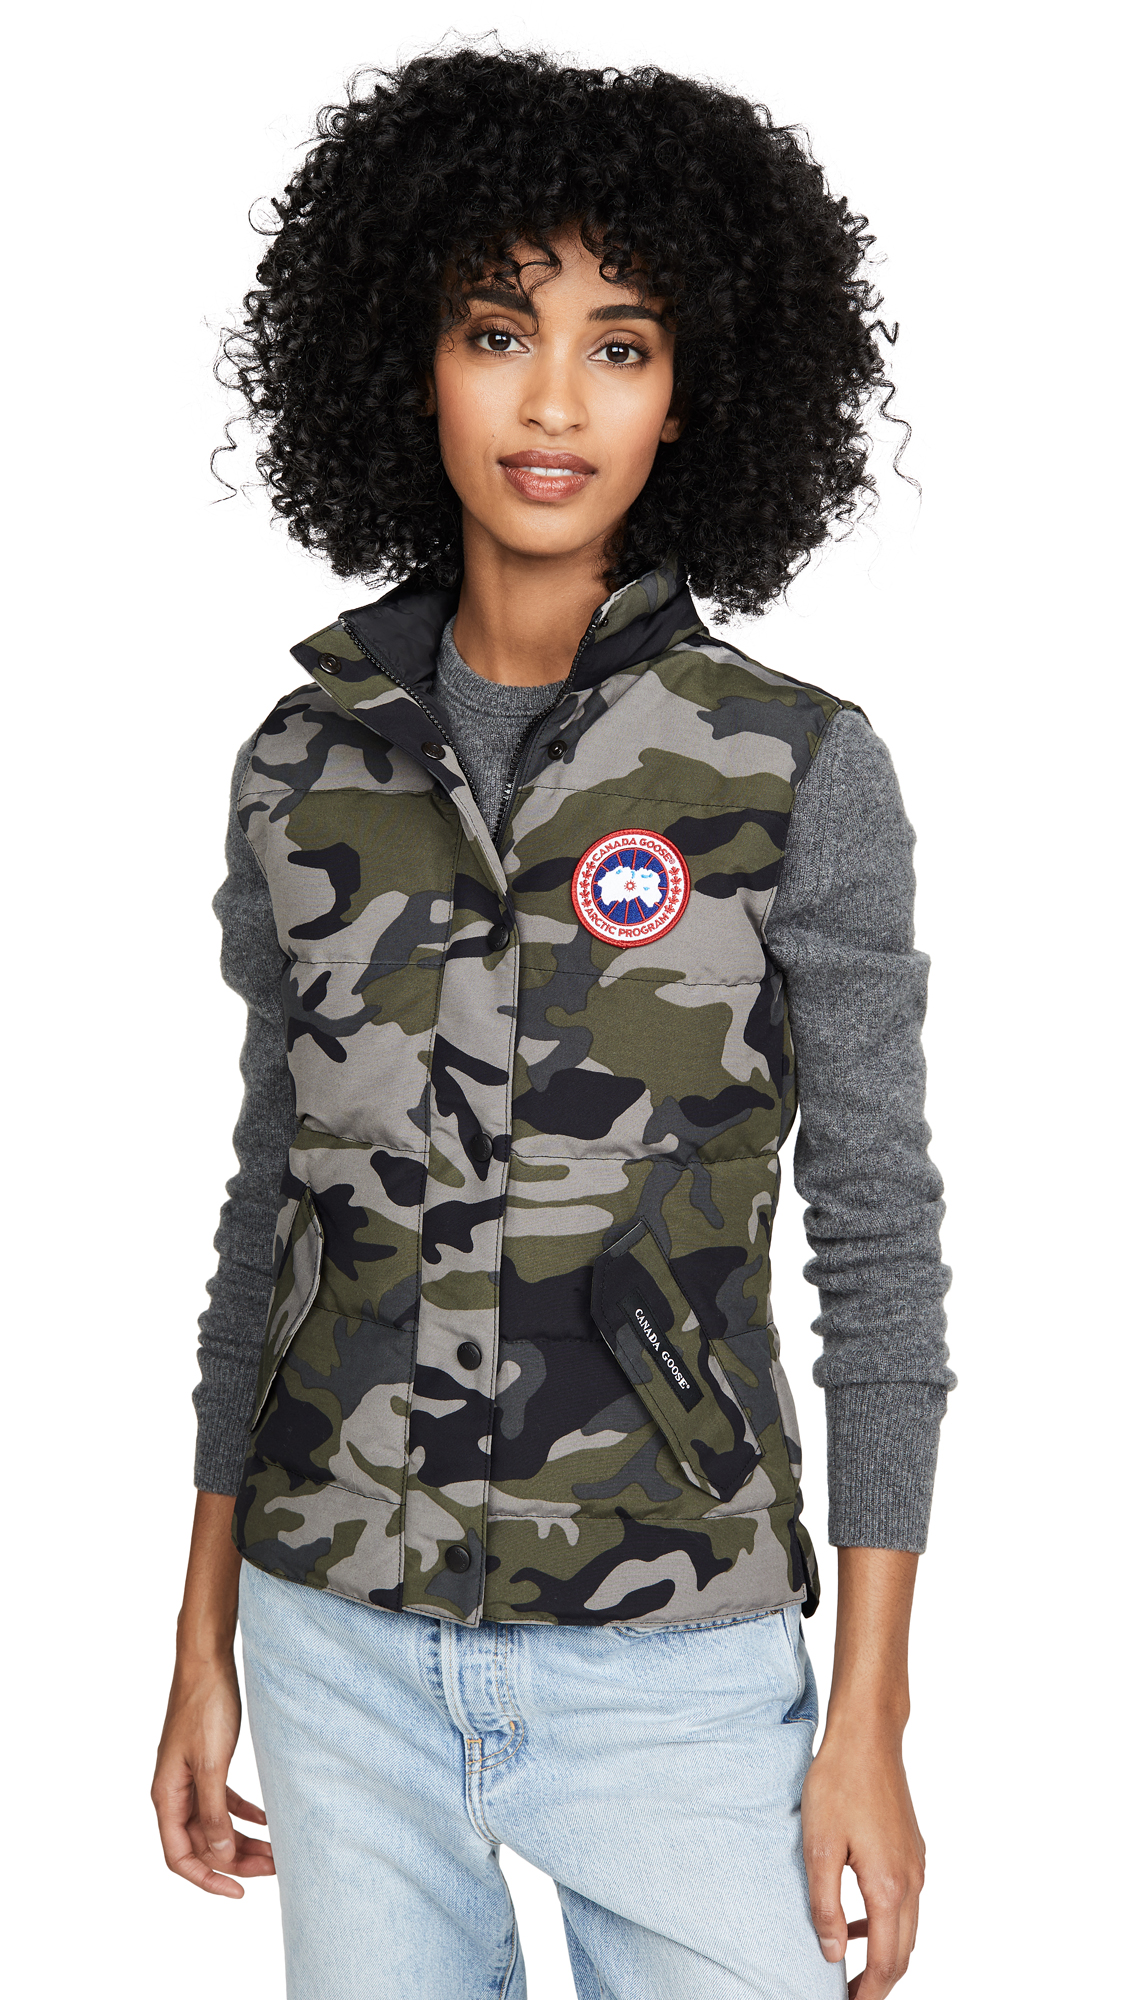 Buy Canada Goose Freestyle Vest online beautiful Canada Goose Jackets, Coats, Down Jackets